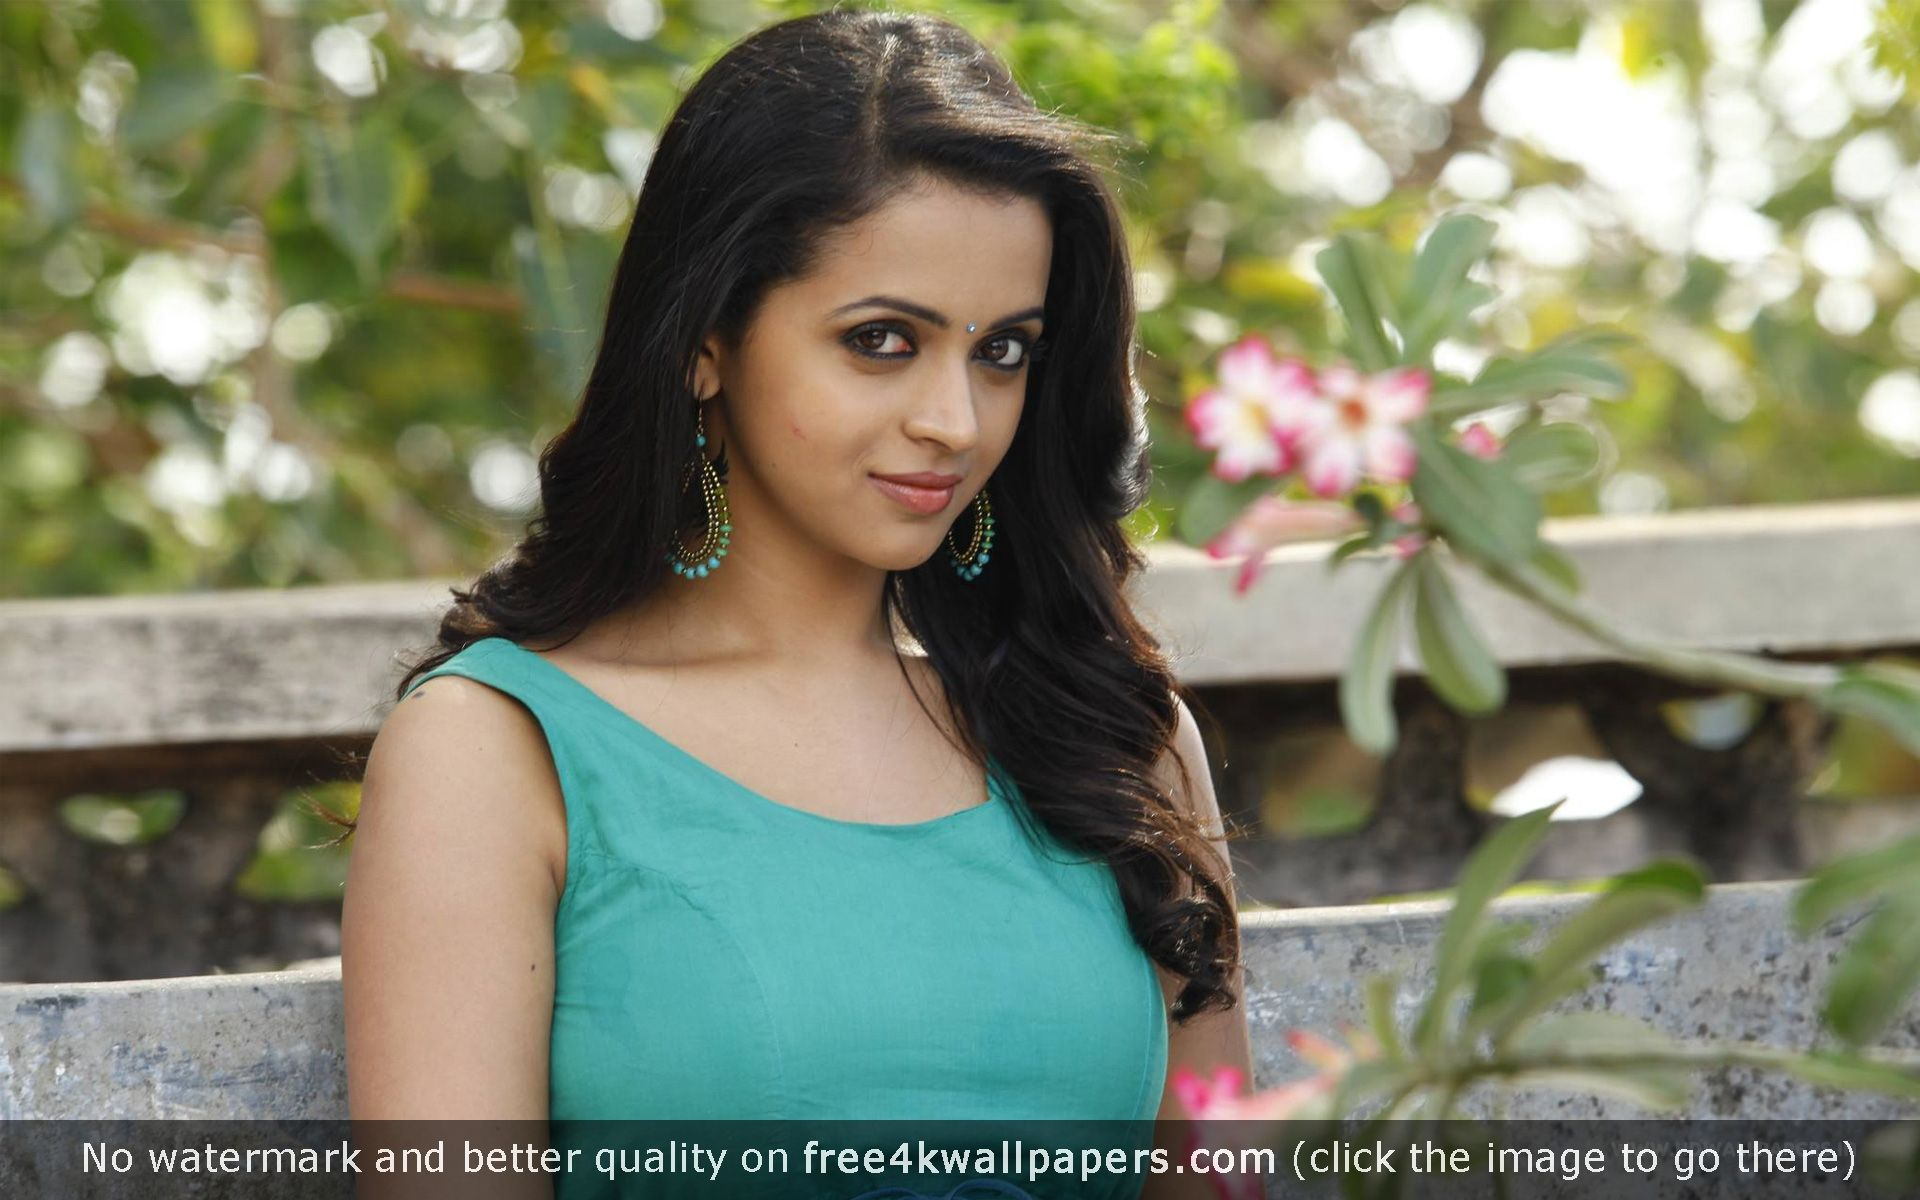 Telugu Actors Hd Wallpapers 53 Wallpapers: Bhavana Tamil Actress 4K Or HD Wallpaper For Your PC, Mac